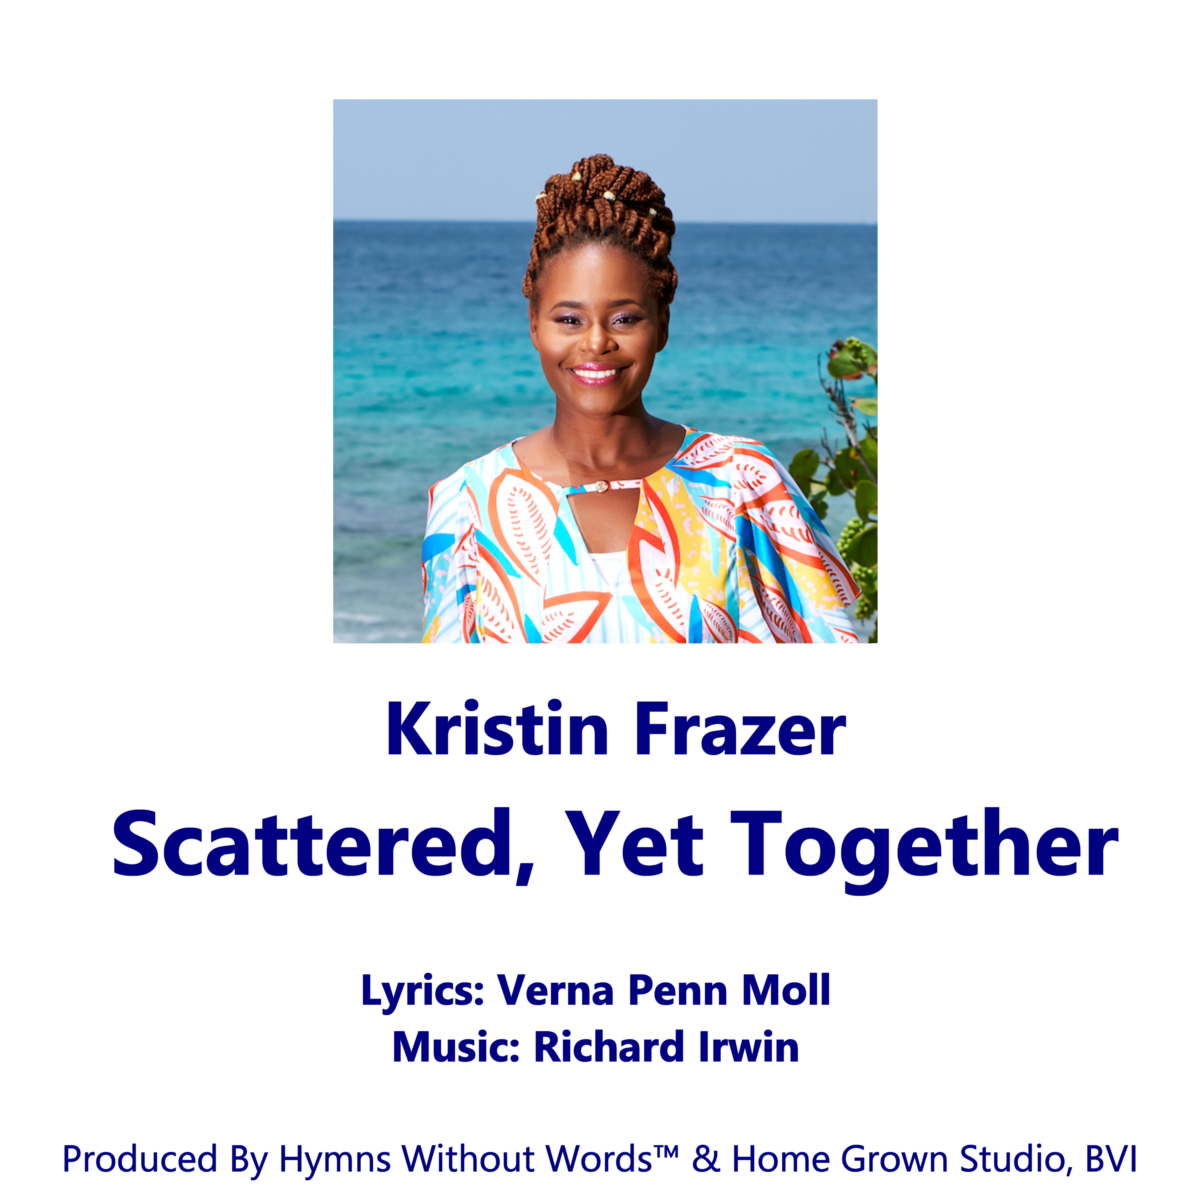 Kristin Frazer Sings Scattered Yet Together